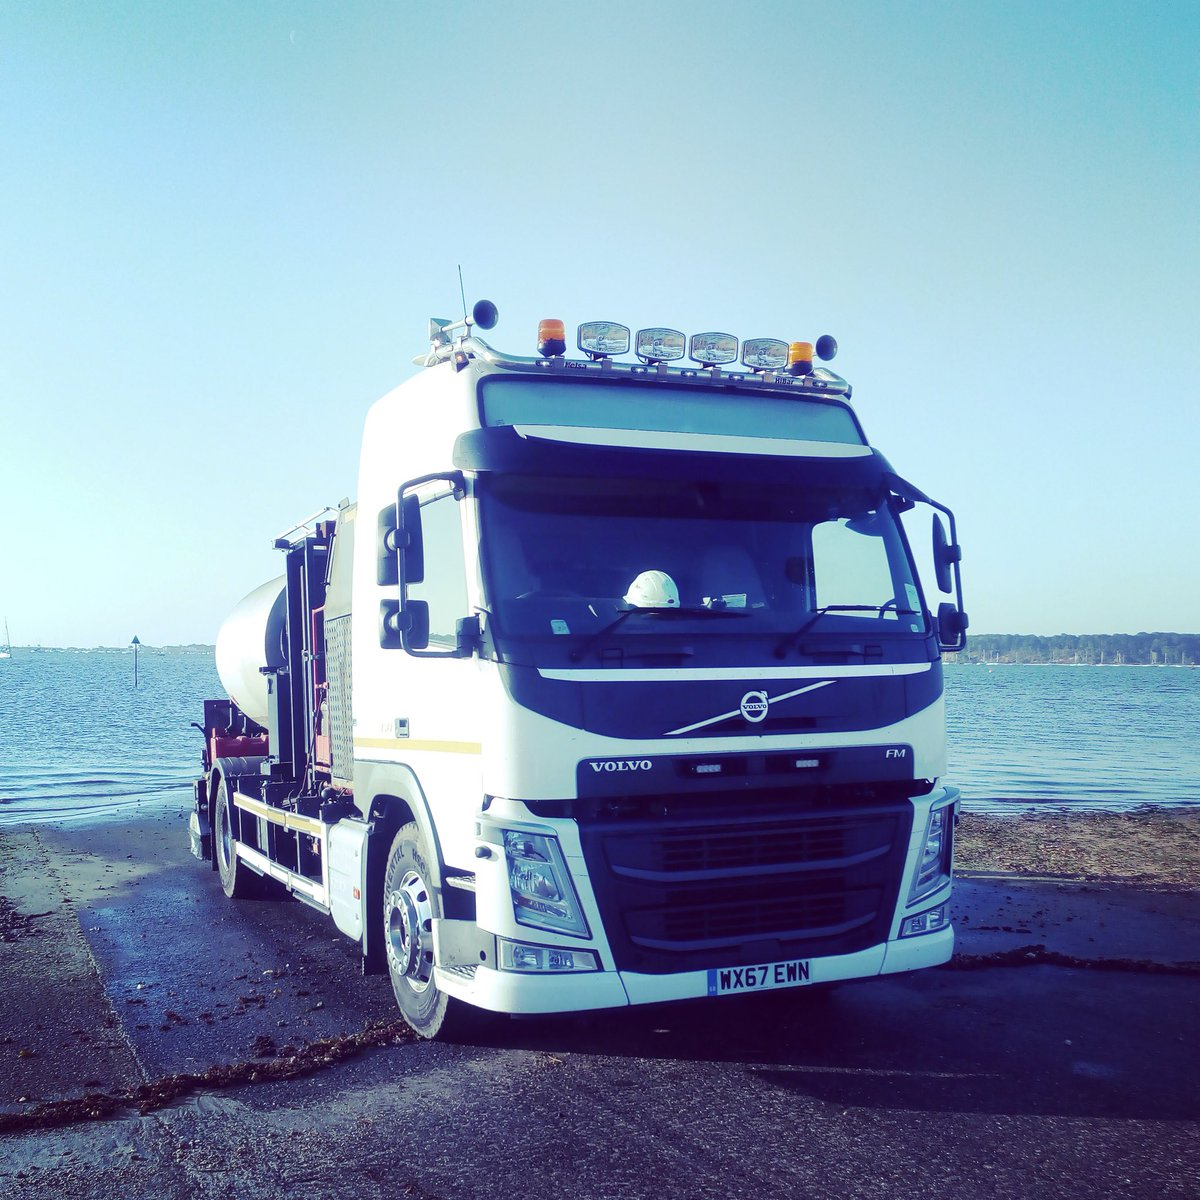 Our Driver sent us this great shot of one of our Tanker Sprayers at #Pooleharbour @VolvoTrucksUK  #RoadConstruction #volvo #trucker #Poole<br>http://pic.twitter.com/ixlngIts4L